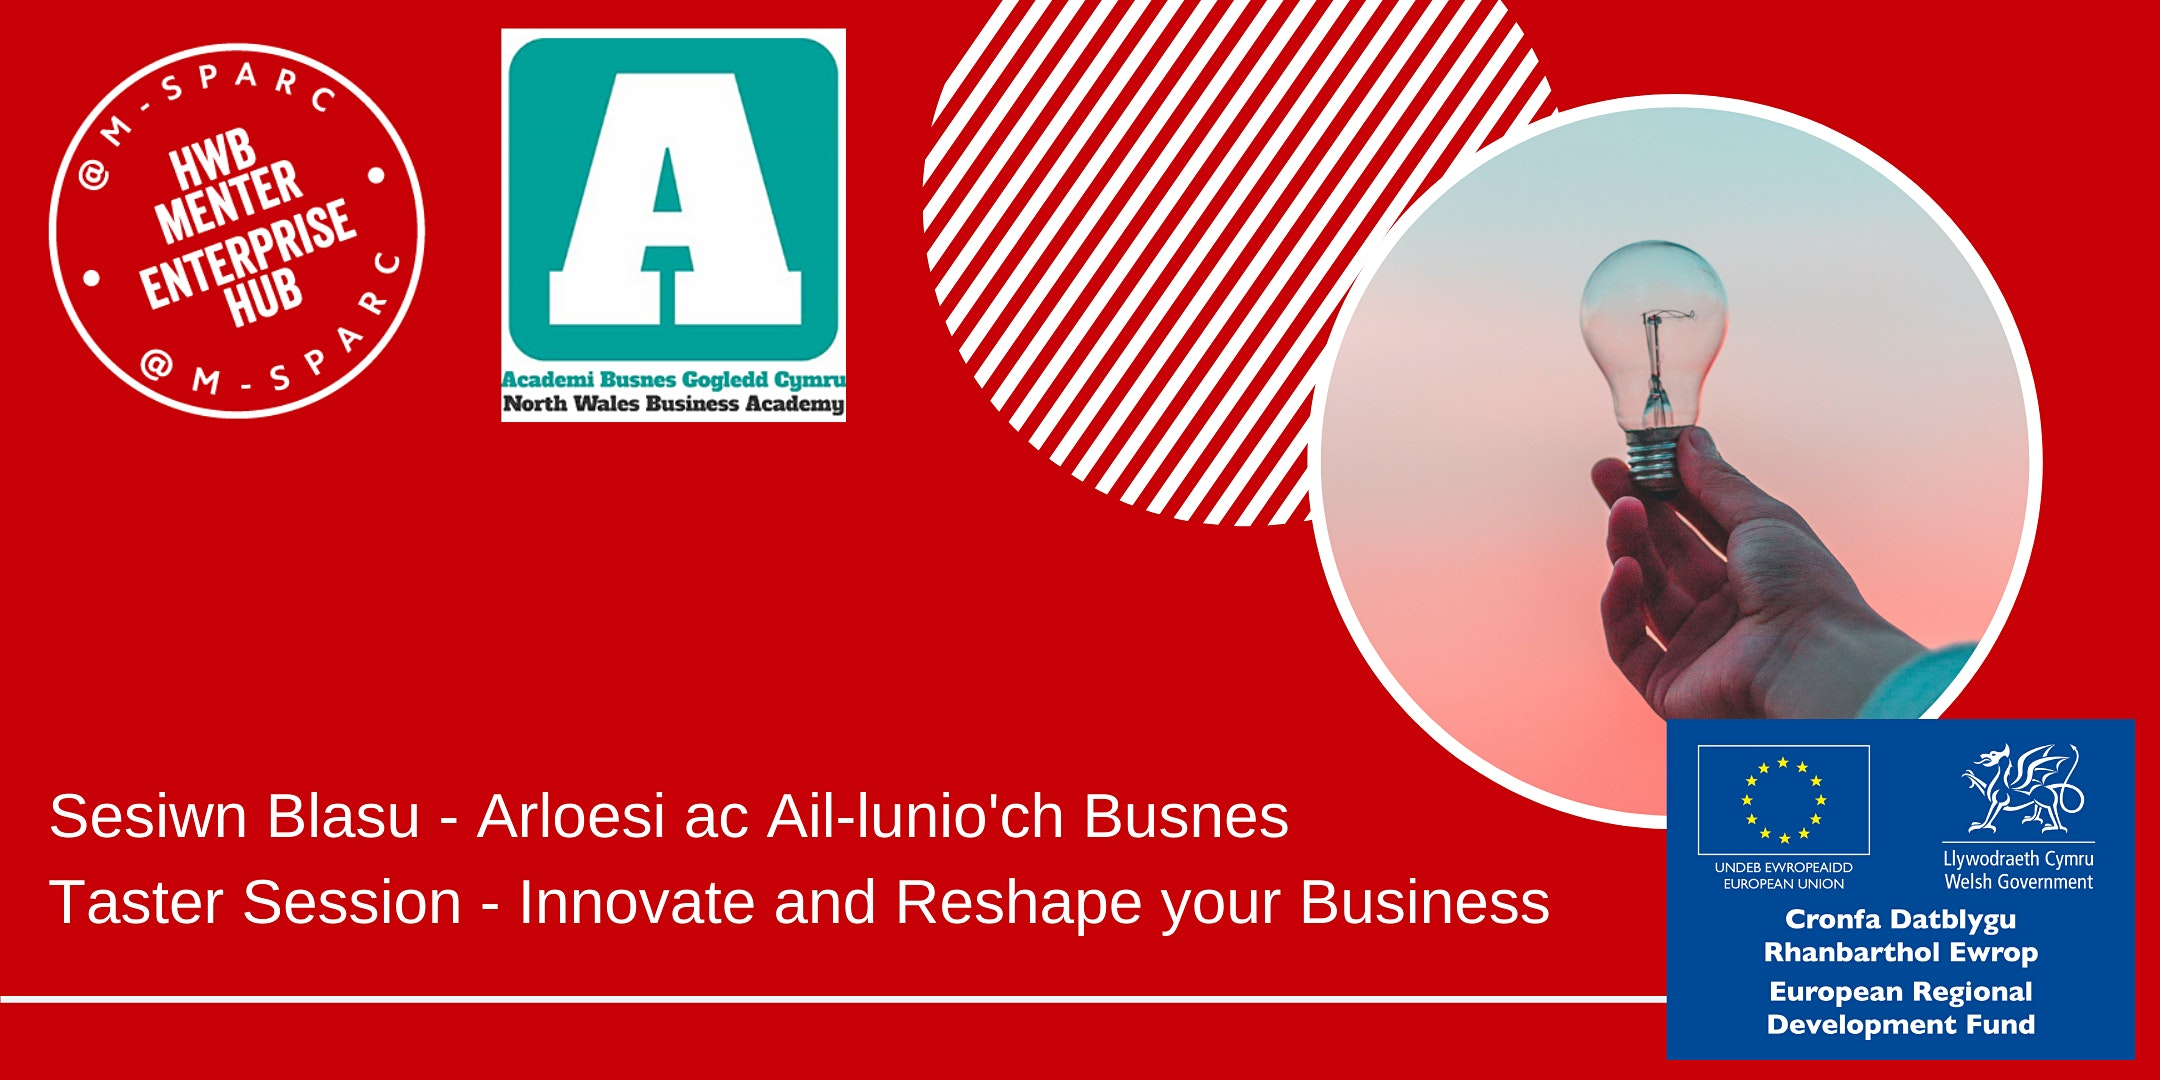 Arloesi ac Ail-lunio'ch Busnes/Innovate and Reshape your Business - Taster